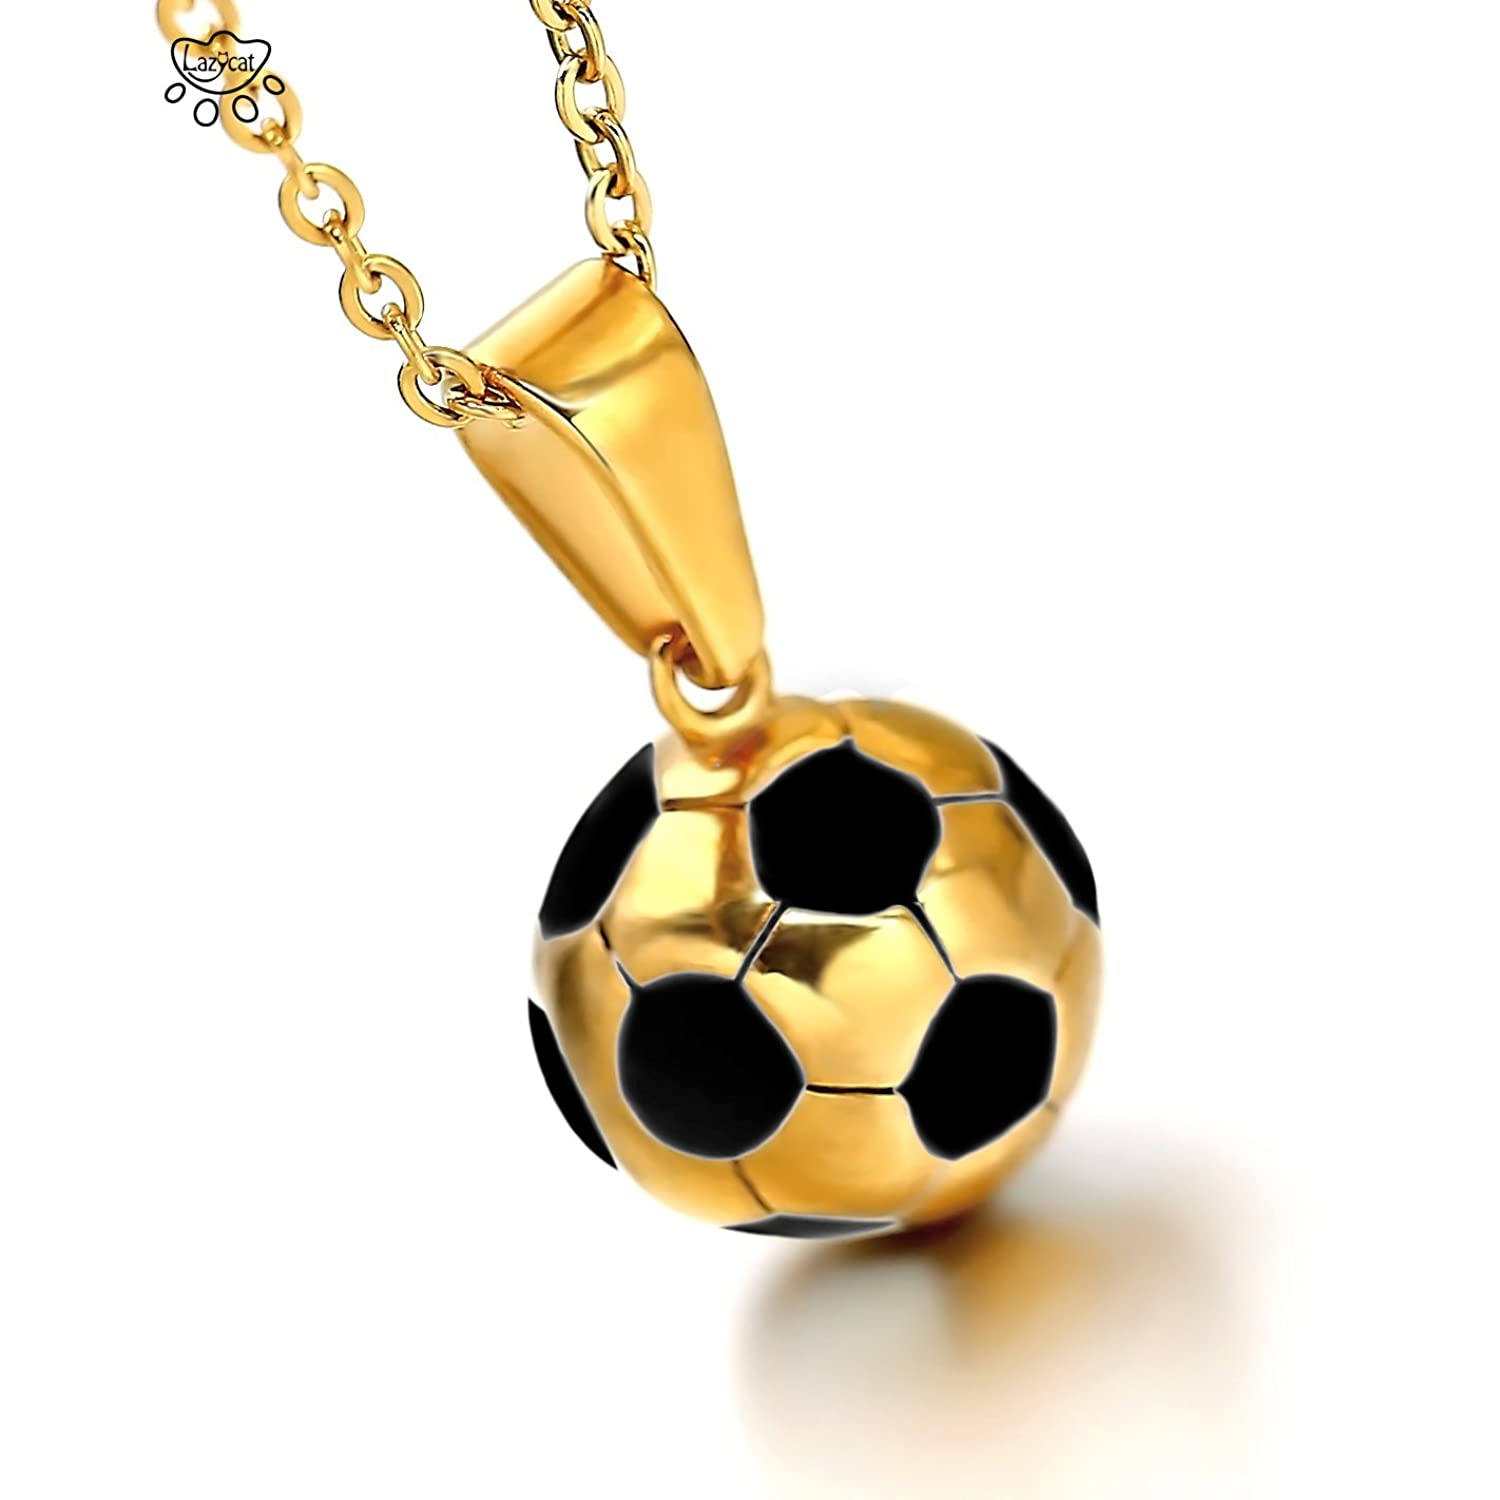 enamel football product zinc necklace zircon pendant ship sports crystal women heart teen fans jewelry girls i fashion love alloy free gift store